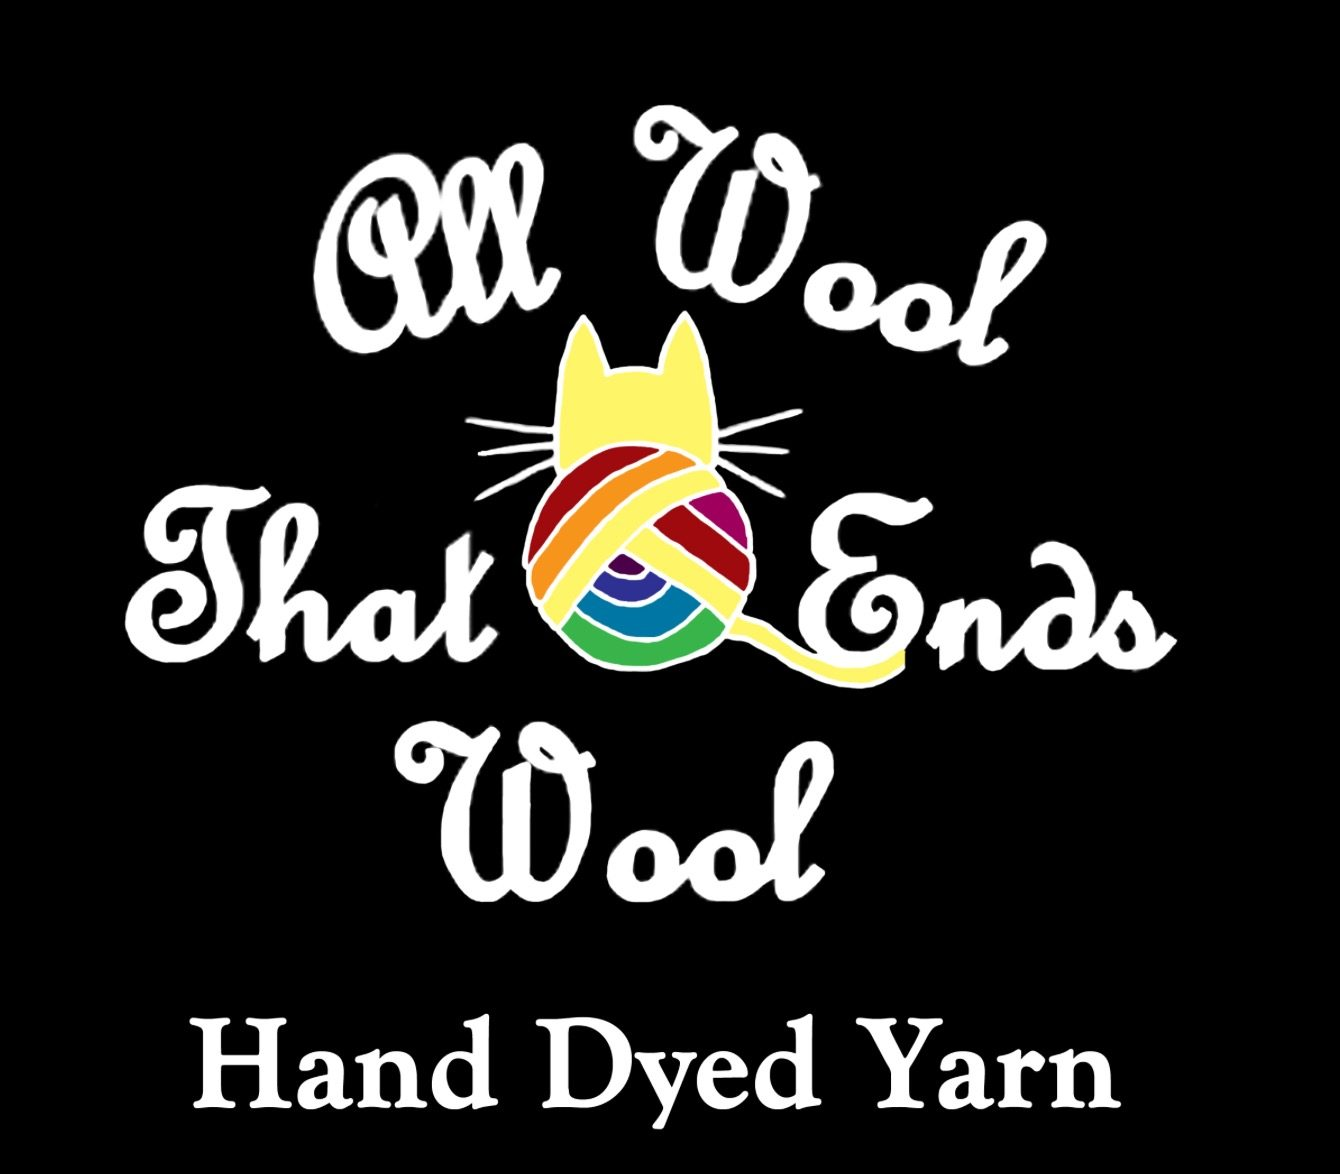 All Wool That Ends Wool